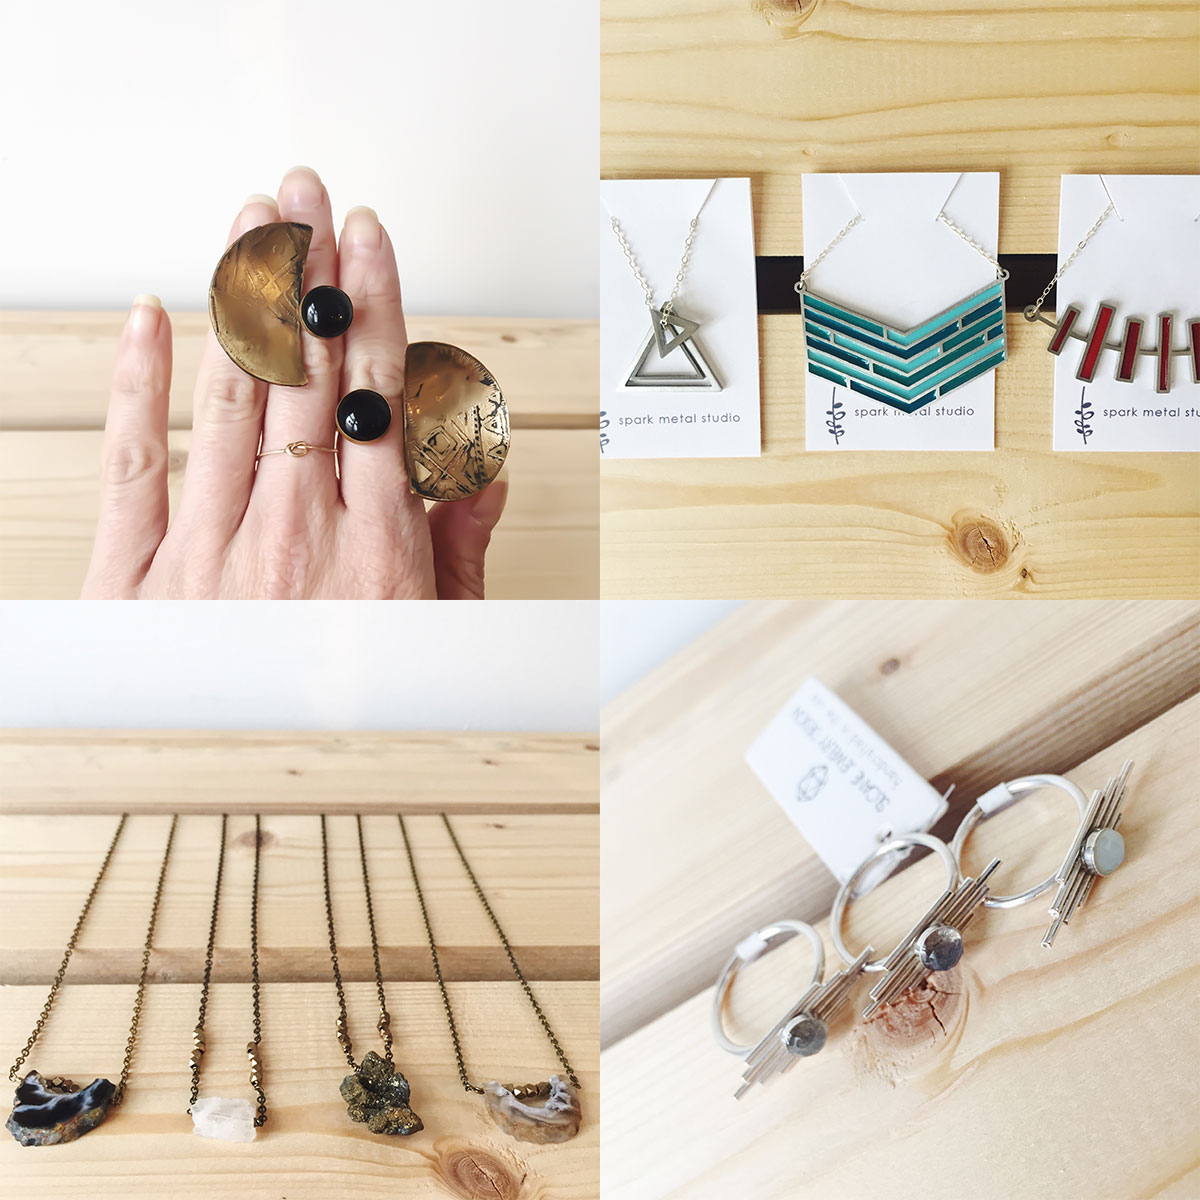 Eclipse rings from Redbud Jewelry, necklaces from Spark Metal Studio, geode necklaces from Grey Theory Mill, and resin rings from Sloane Jewelry Designs at Homespun: Modern Handmade.